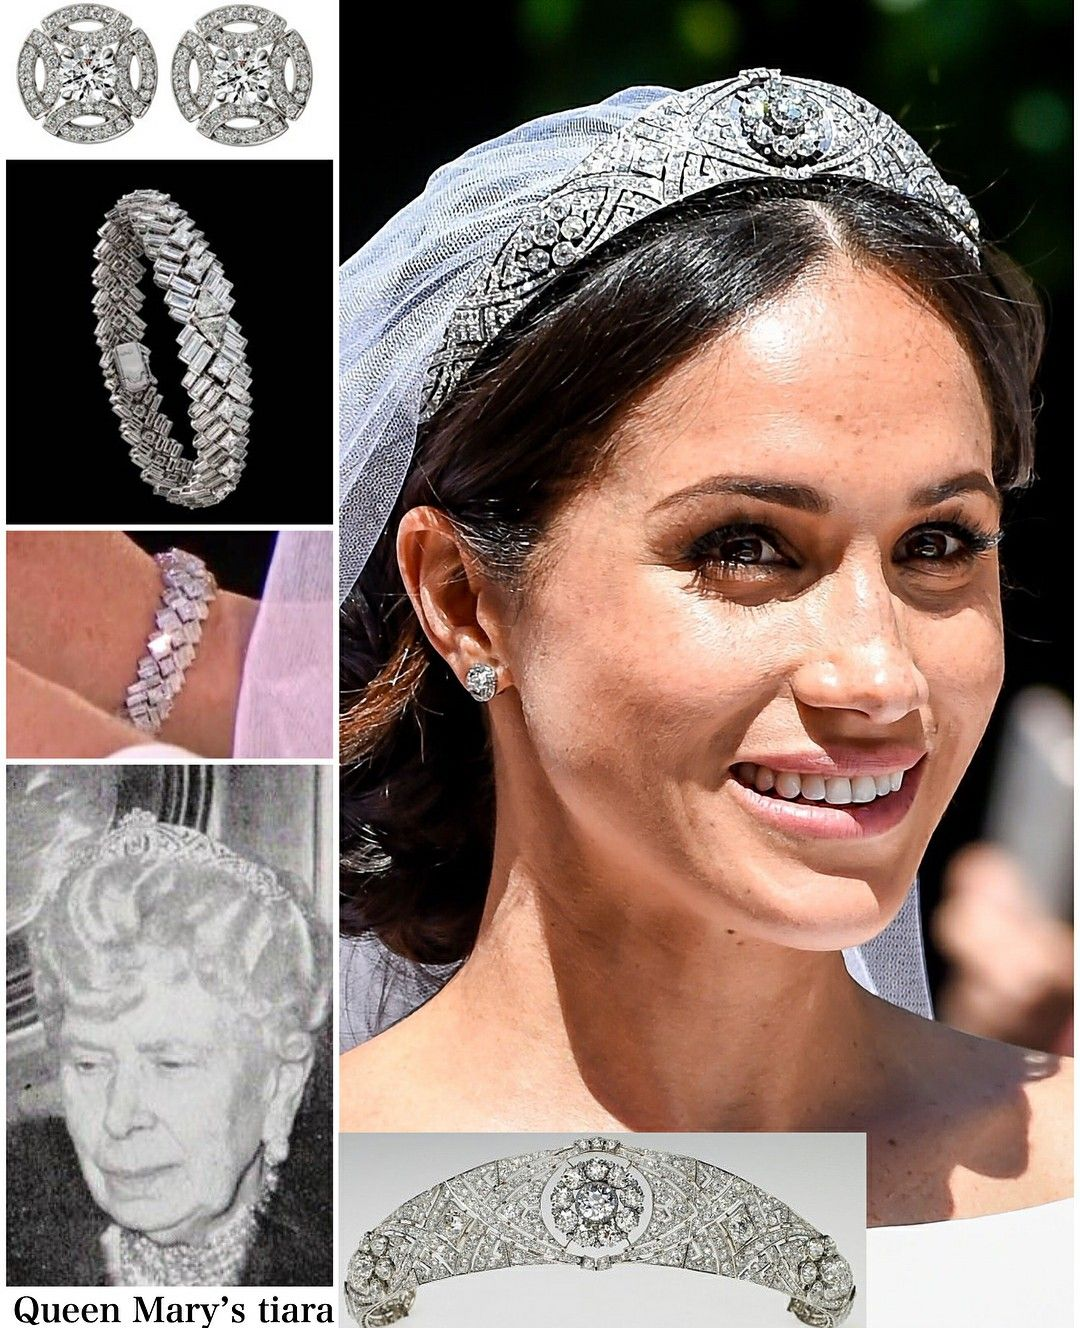 meghan s wedding tiara and jewelry for her wedding day royal jewelry royal jewels royal tiaras meghan s wedding tiara and jewelry for